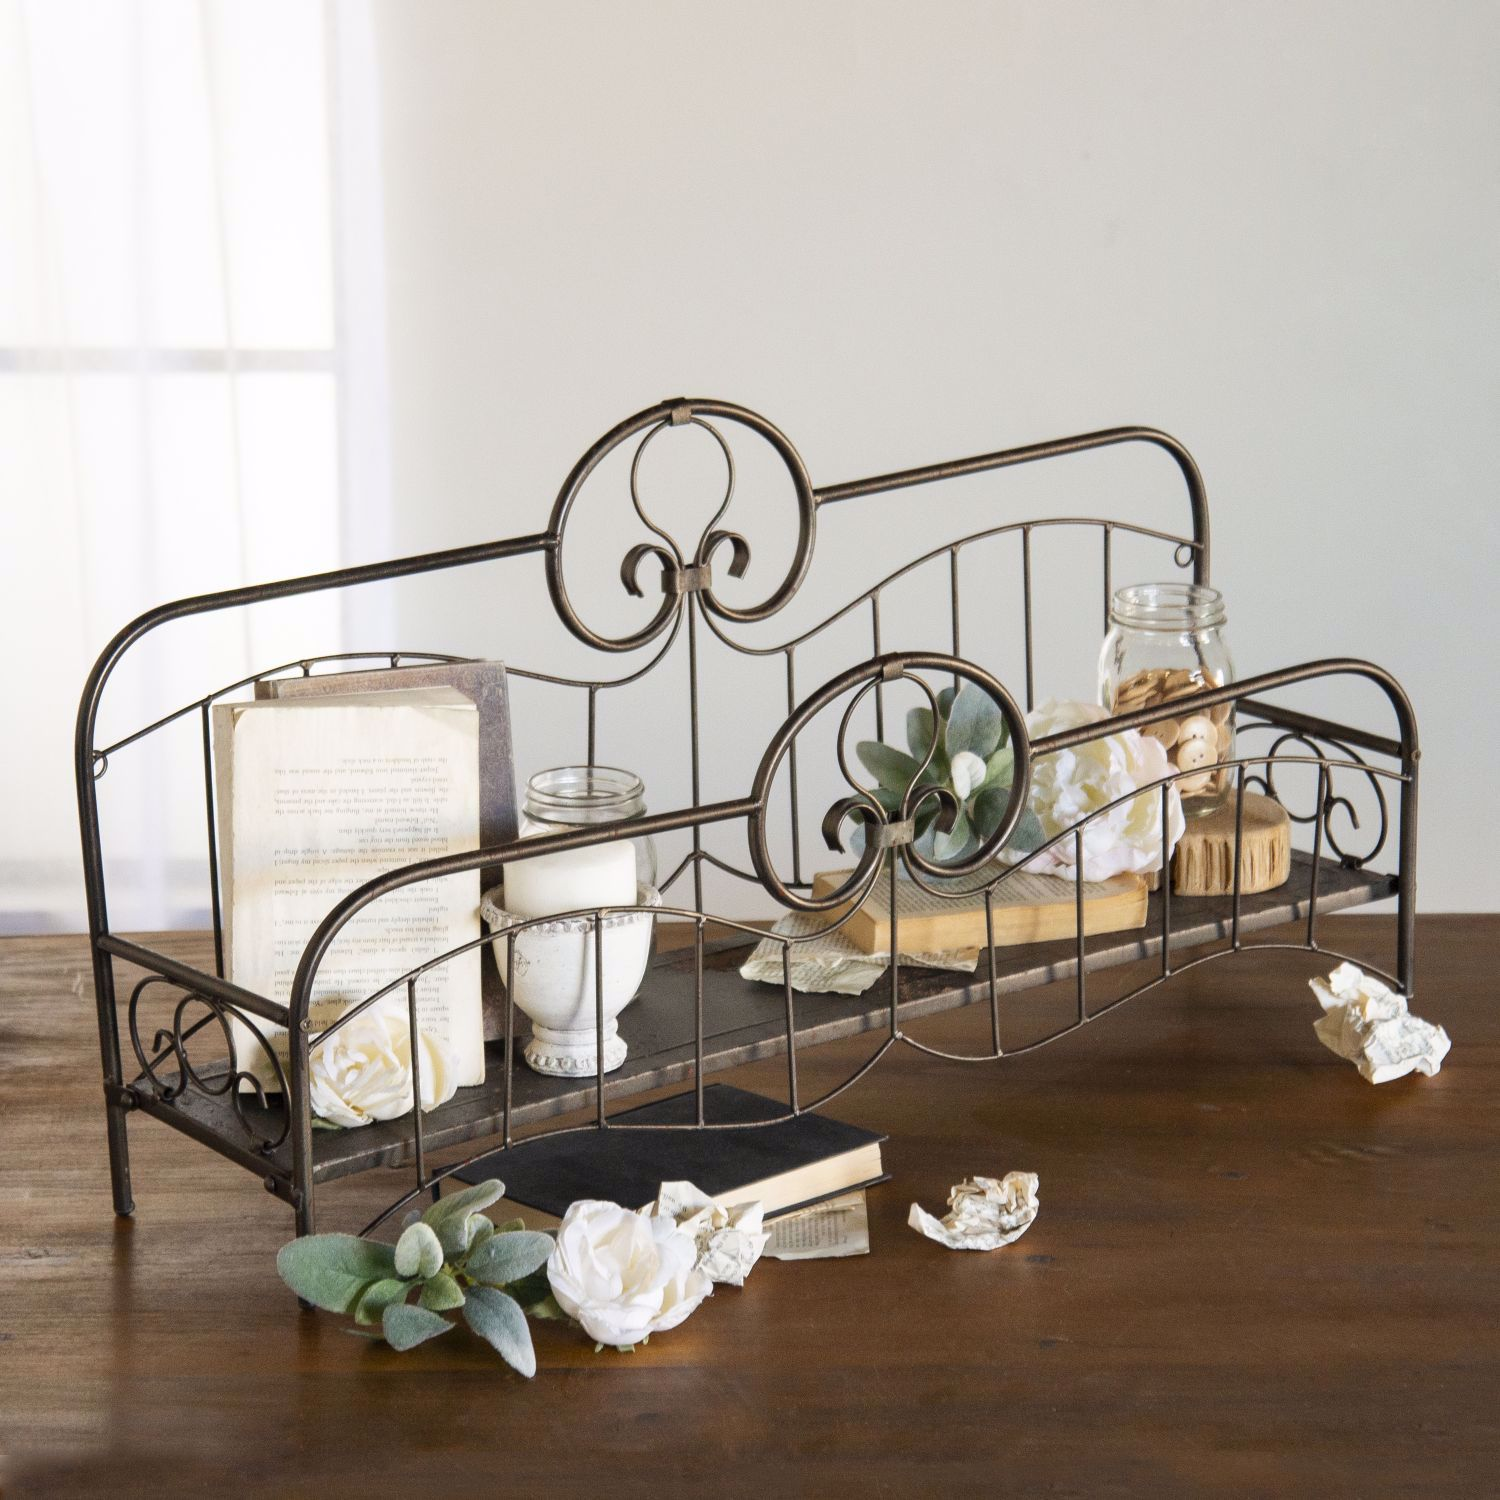 Picture of Metal Bed Accent Decor